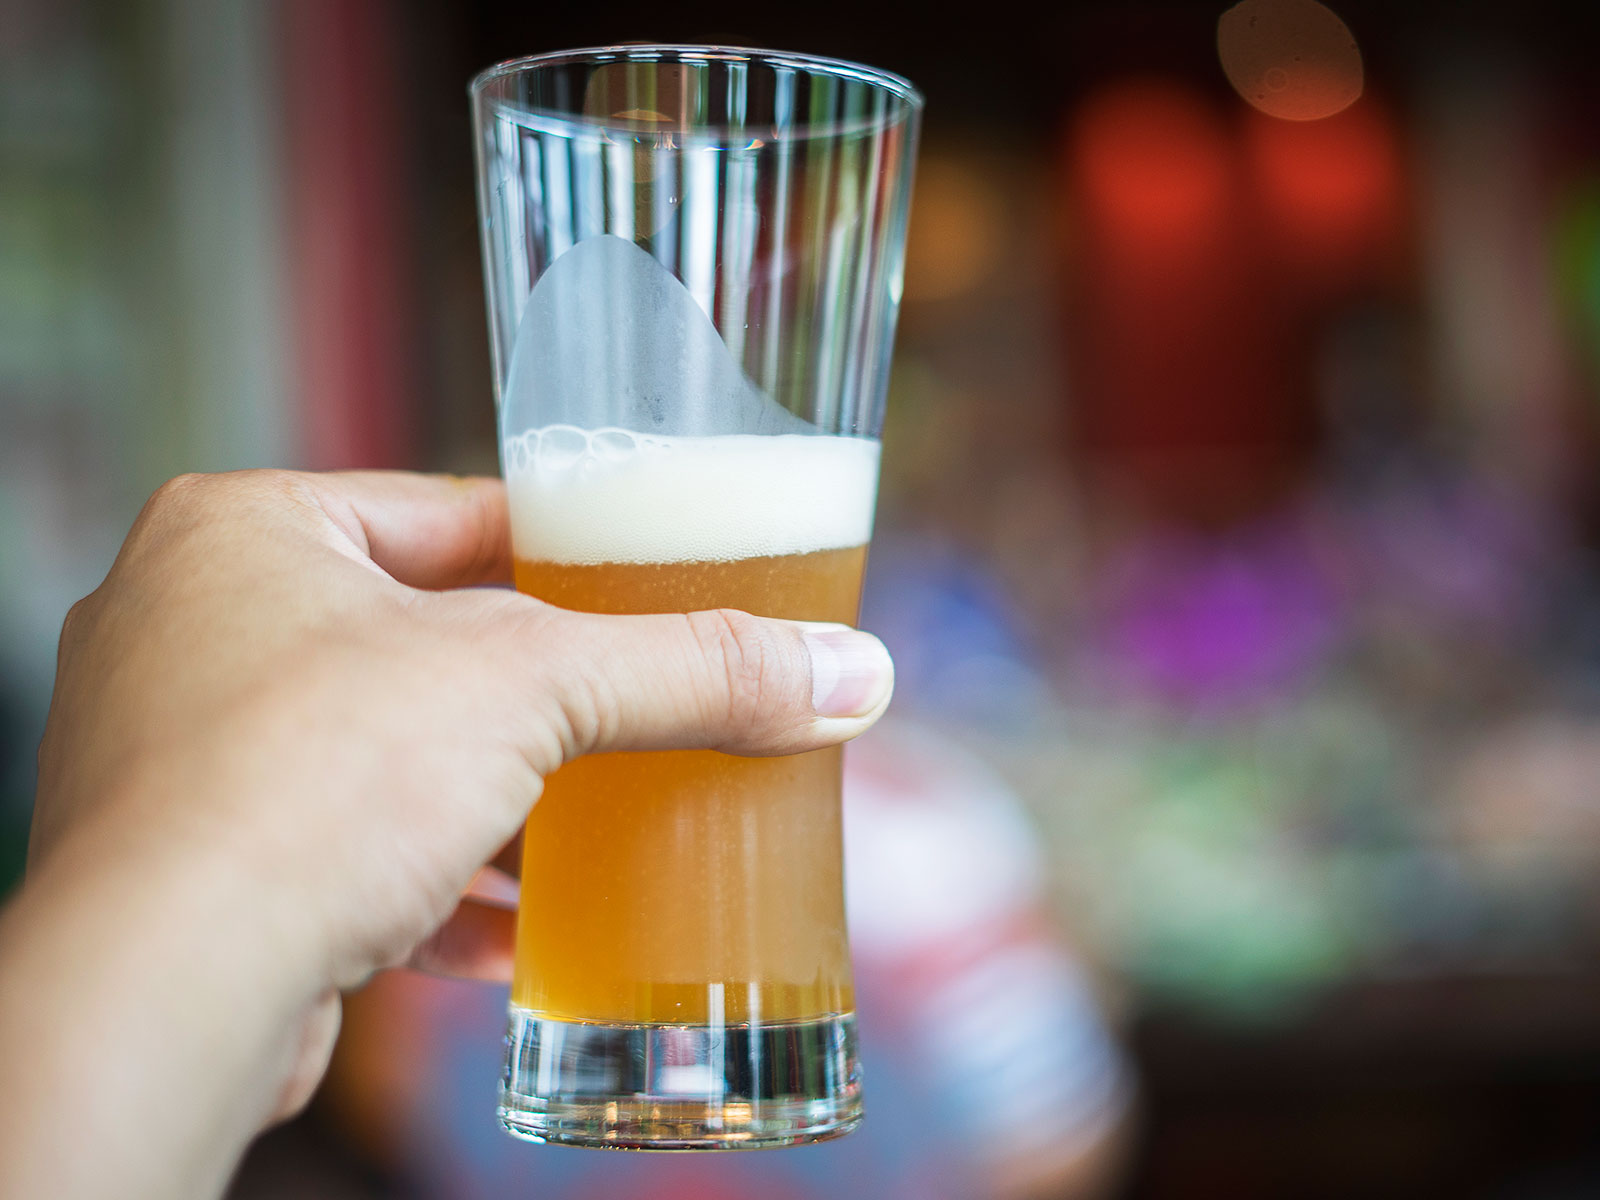 Brewer's Yeast Can be Cultivated Using Beer Waste [Video]